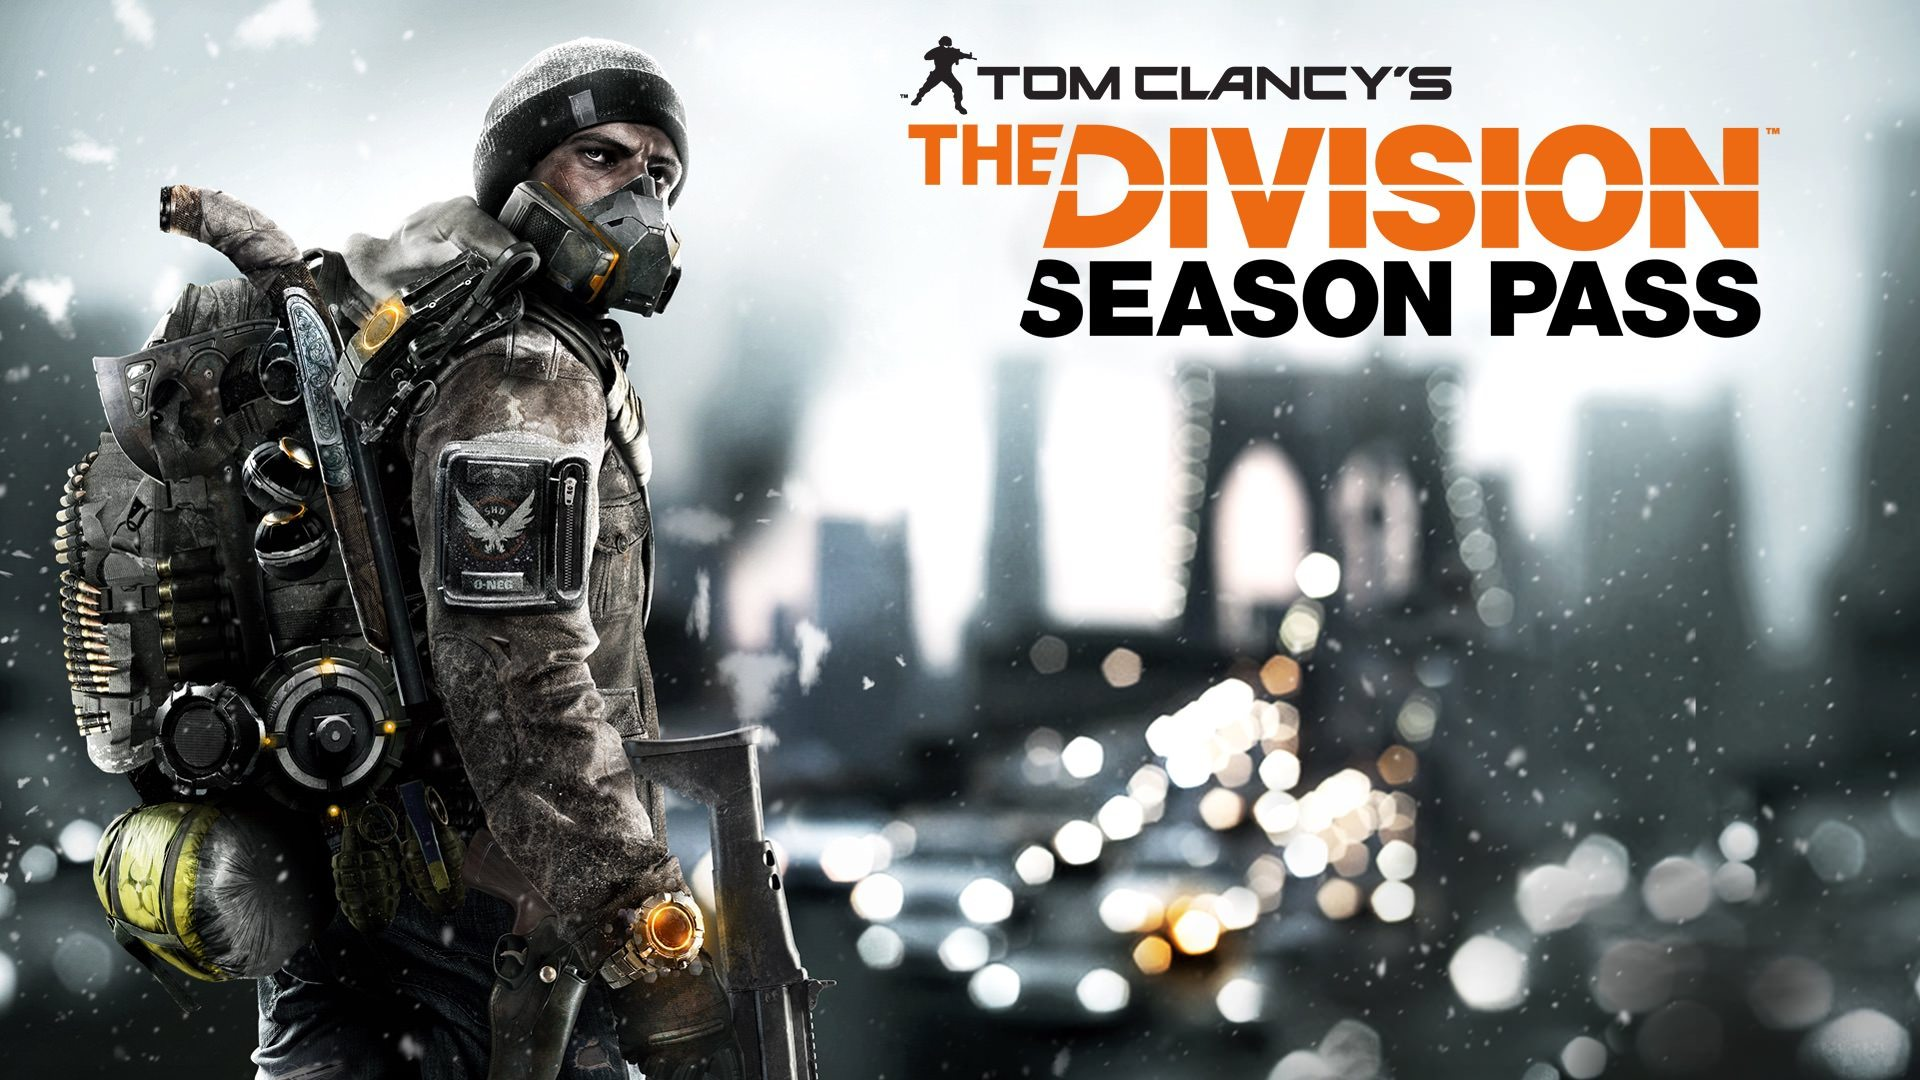 tcthedivision1920x1080